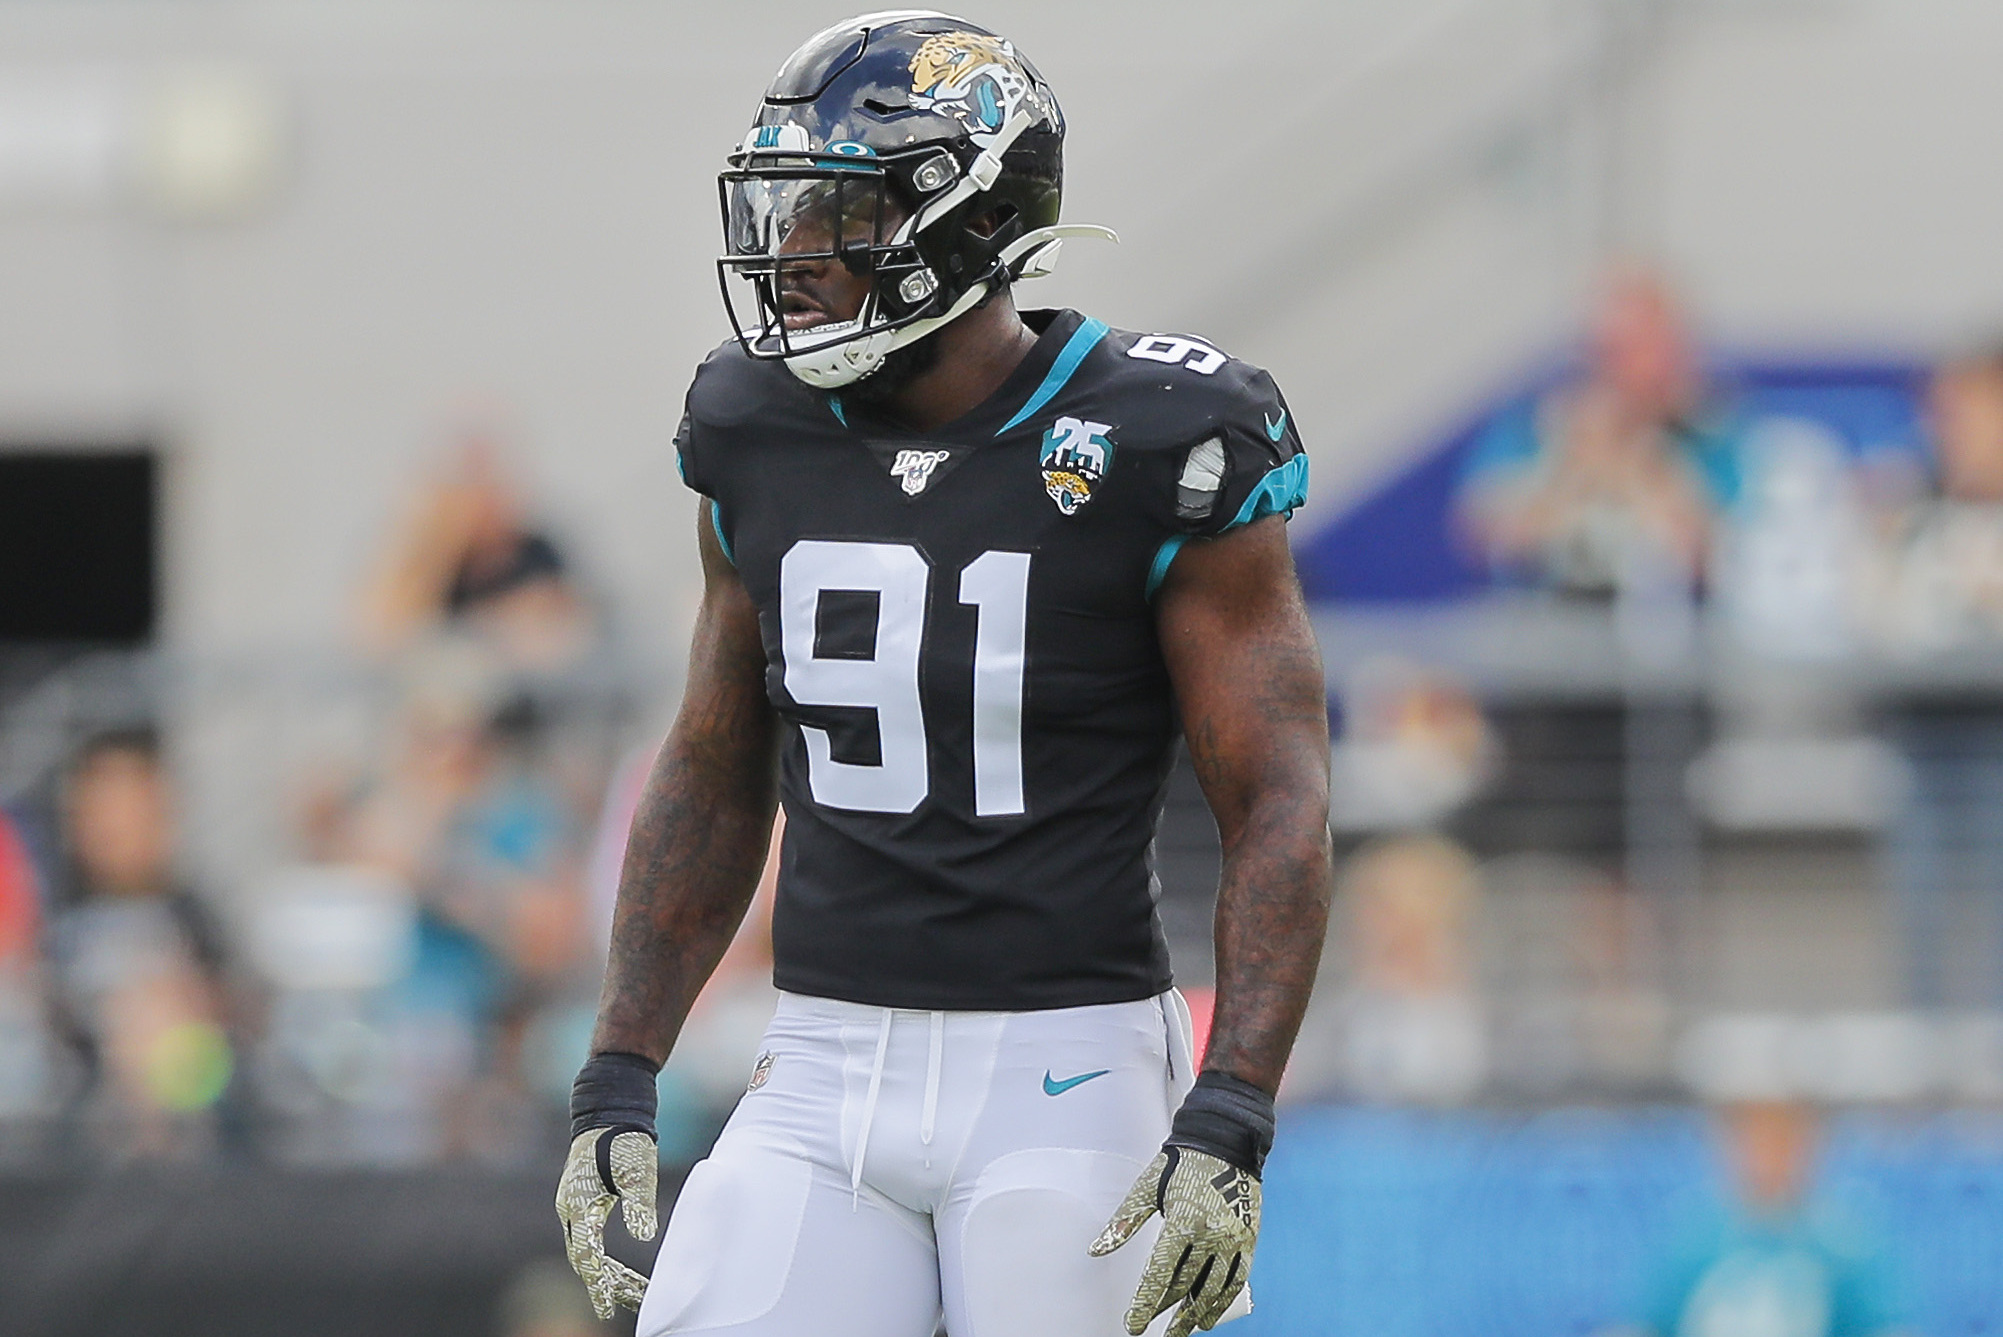 Yannick Ngakoue is Dropping All Types of Hints He Could Be An Eagle Soon